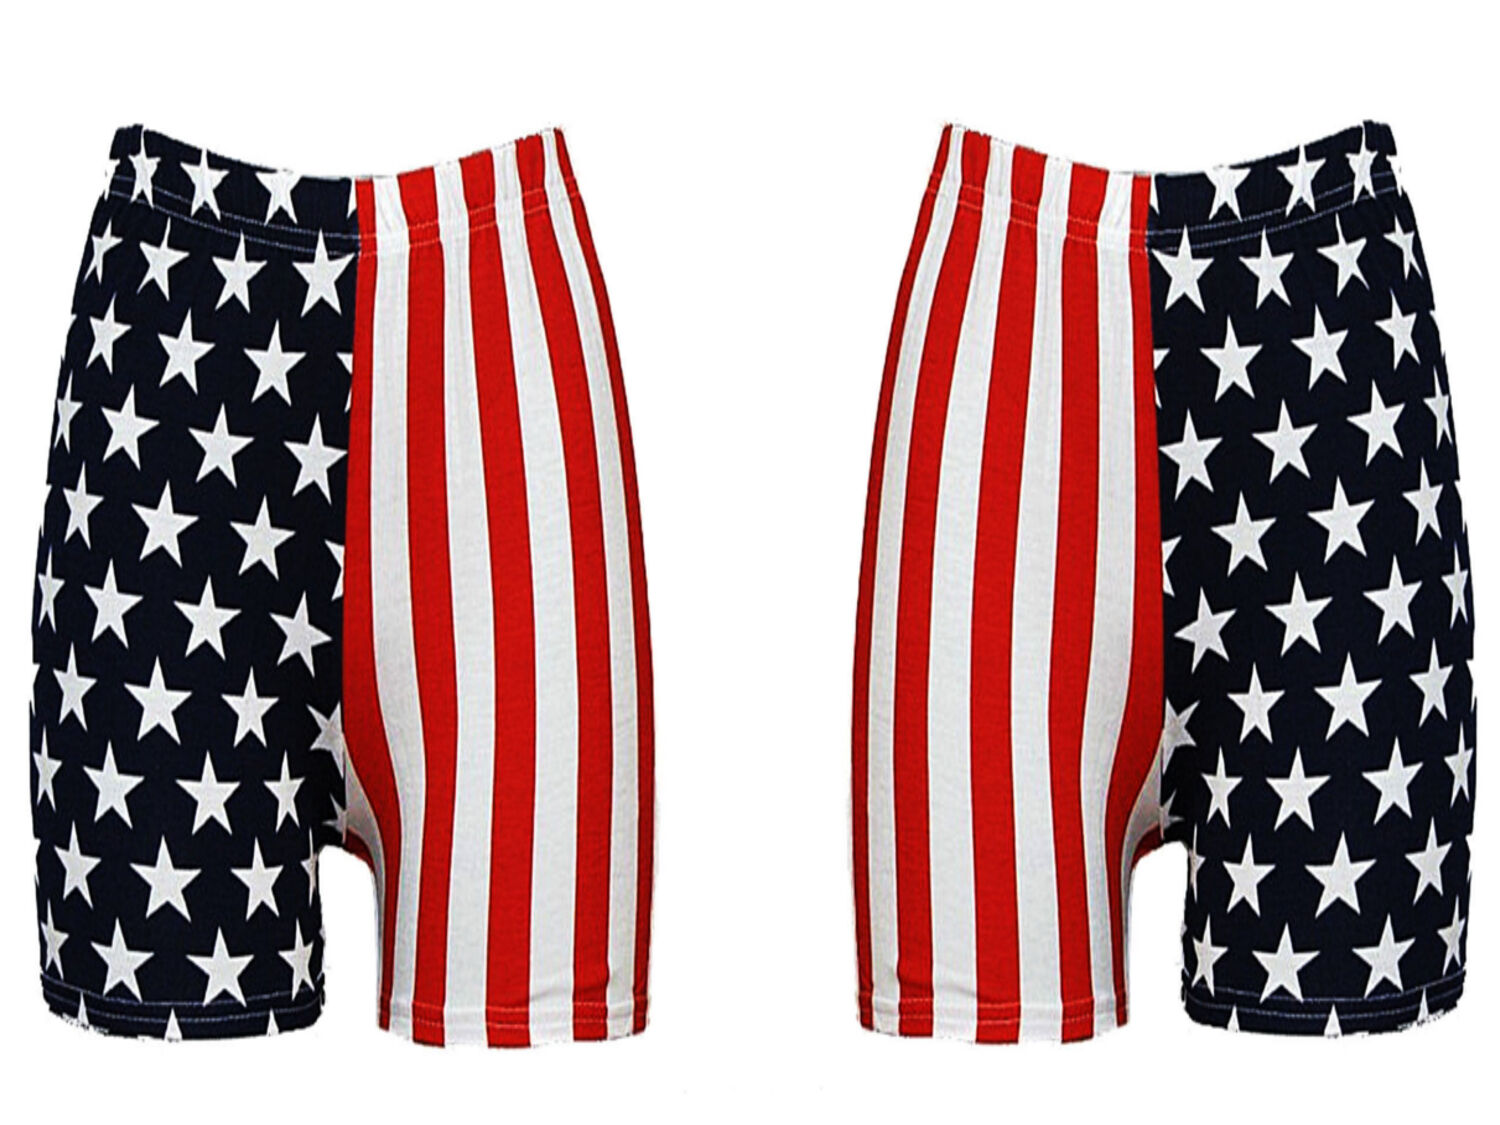 Details about WOMENS USA AMERICAN FLAG HOT PANTS SHORTS STARS STRIPES LADIES  INDEPENDANCE DAY a7e2813220